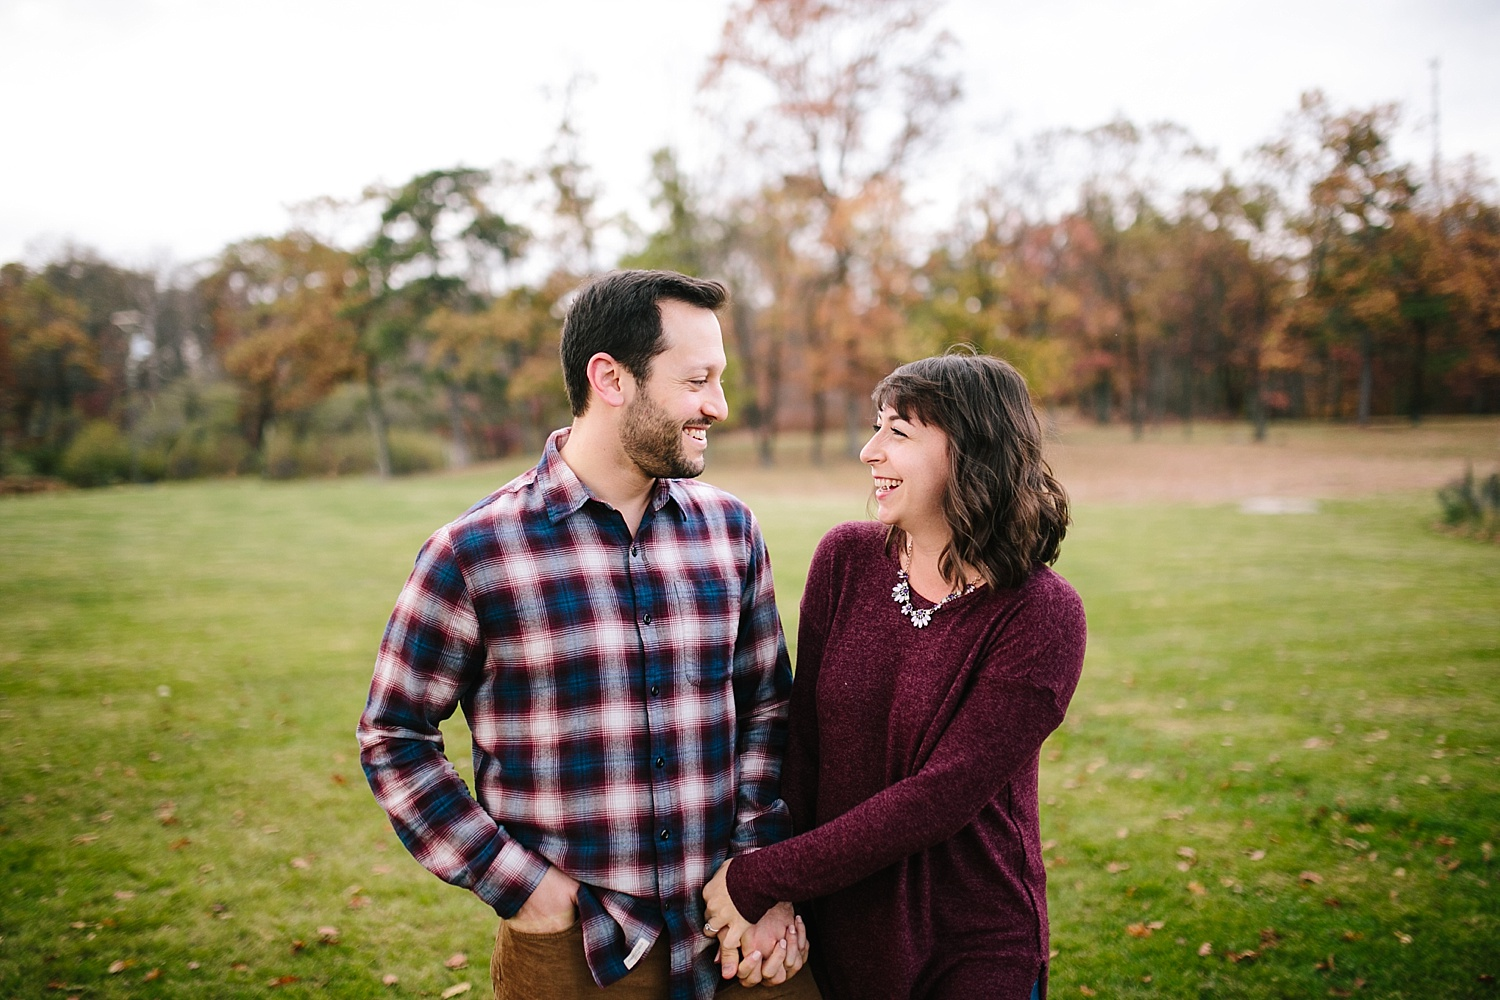 michelleanddaniel_eaglerockreservation_engagement_image002.jpg